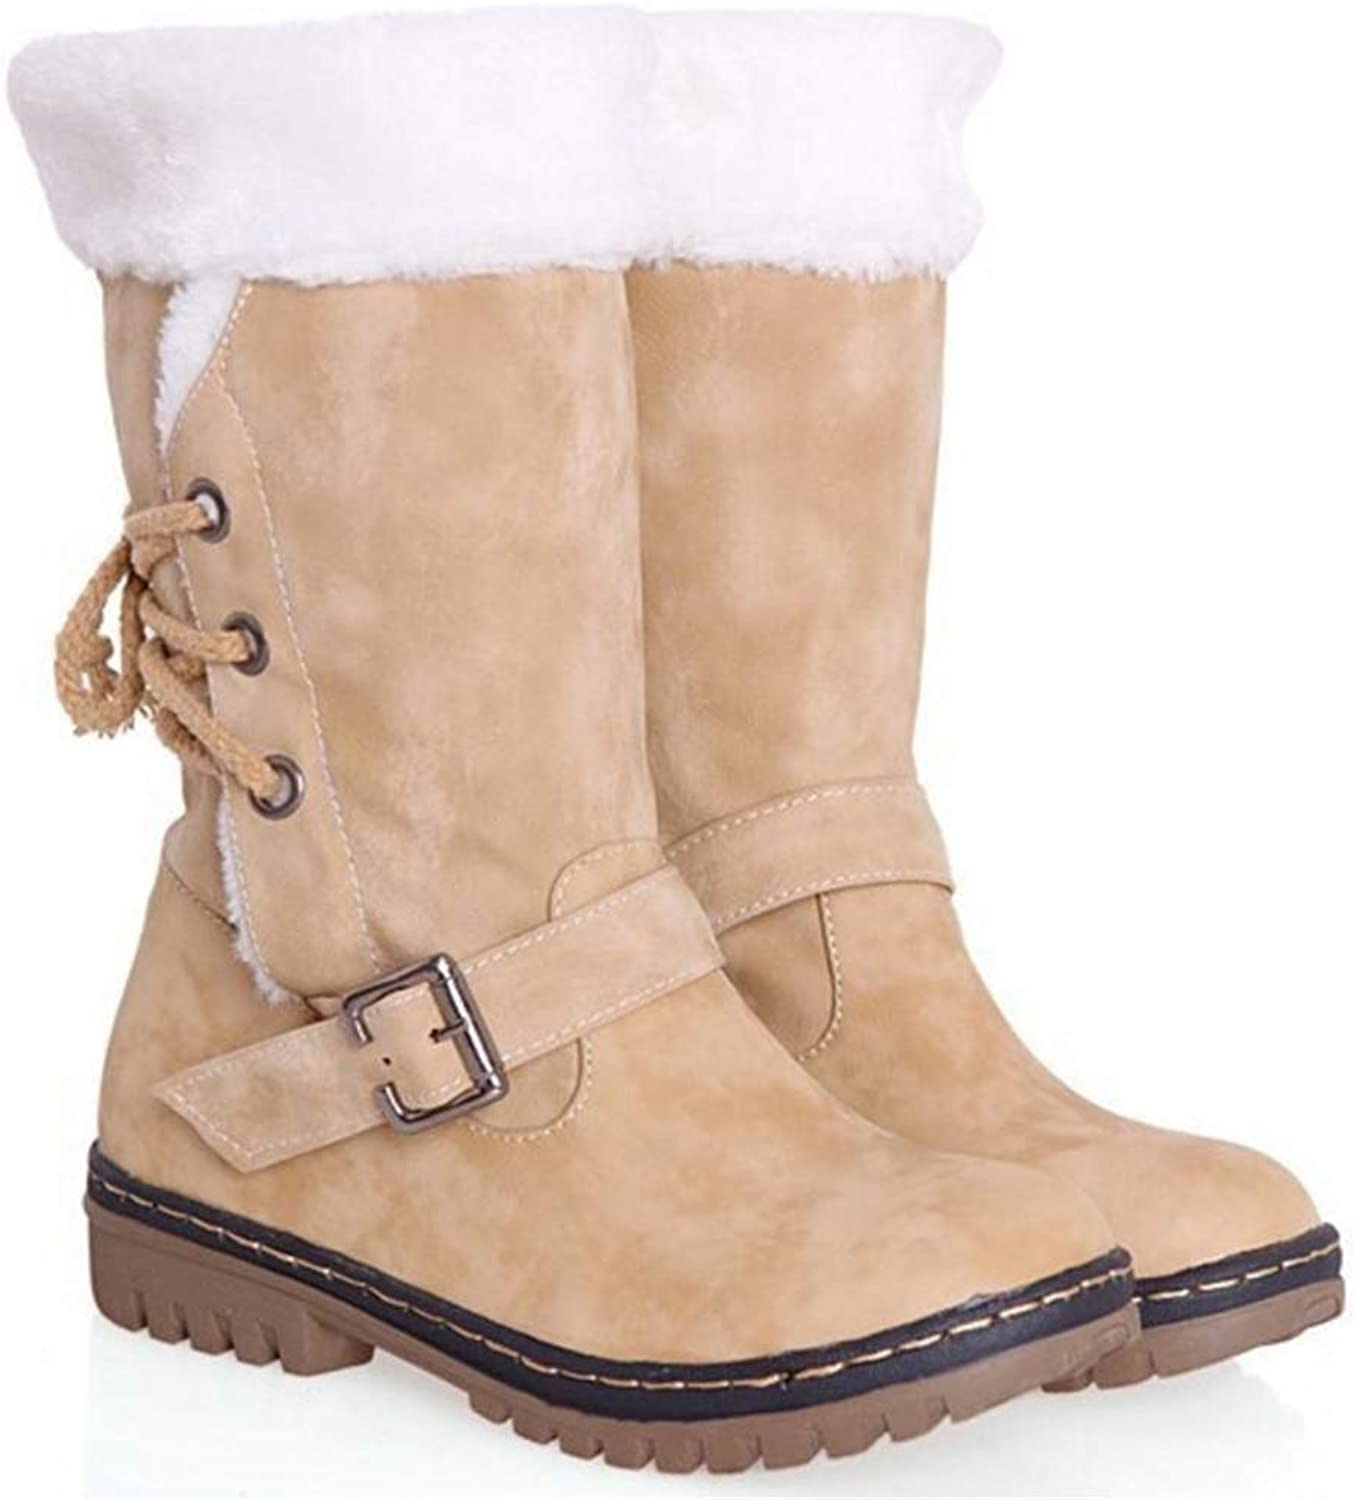 Quality.A Snow Boots Elegant Women's Boots Martin Boots Comfortable Booties